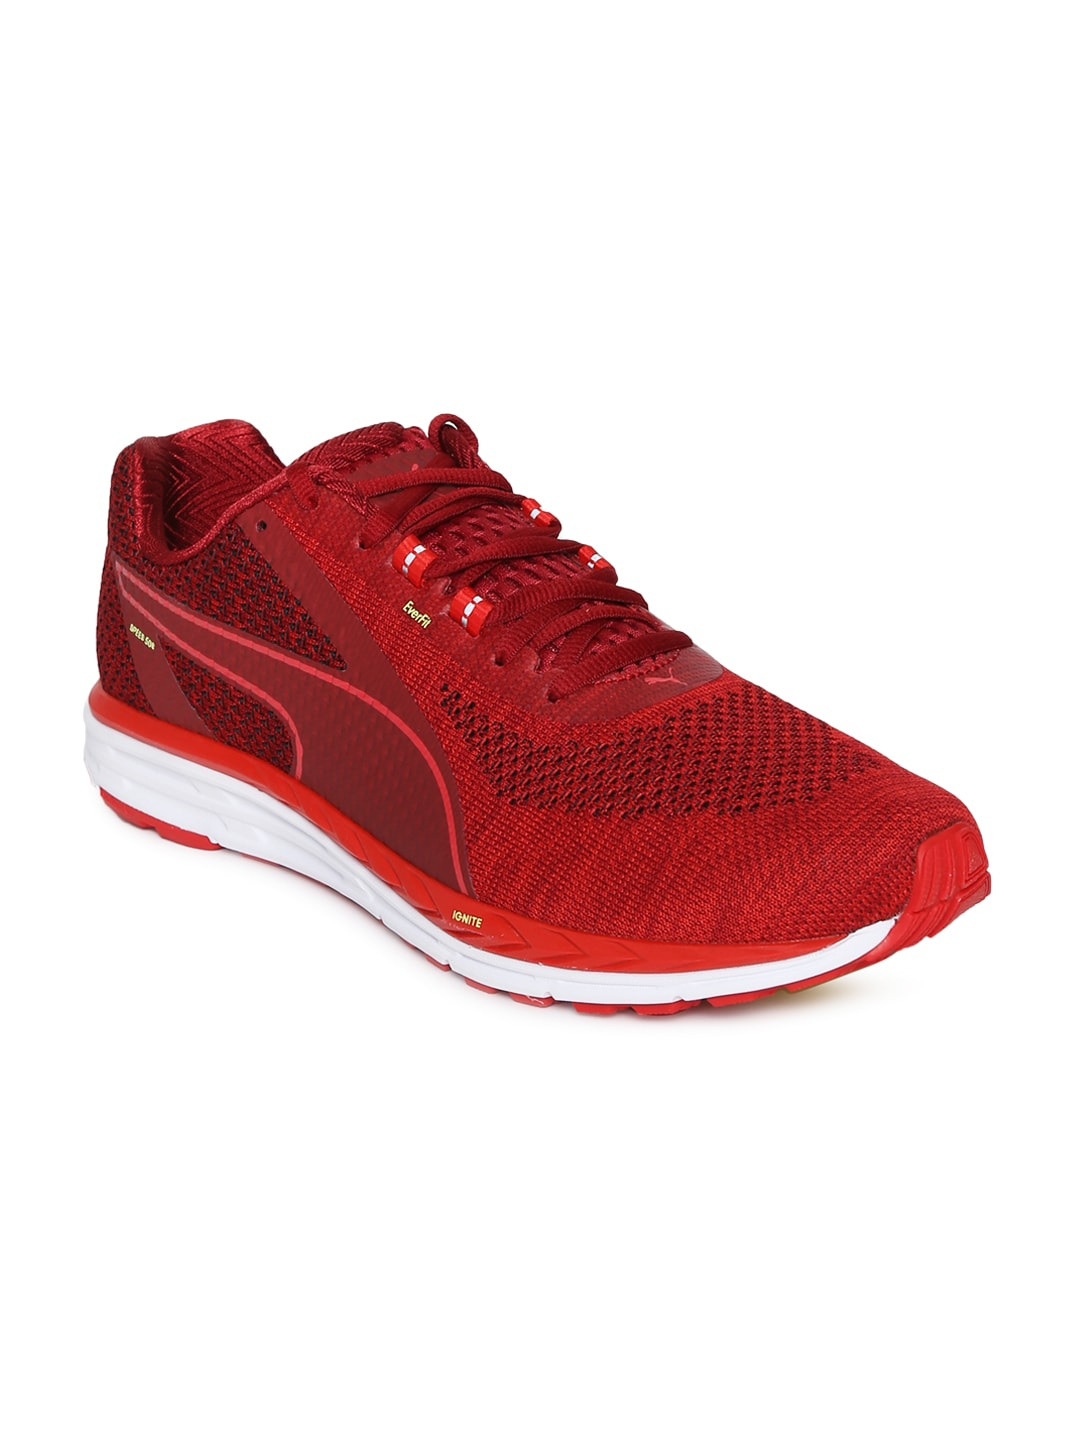 de8367d6108 Puma Running Shoes